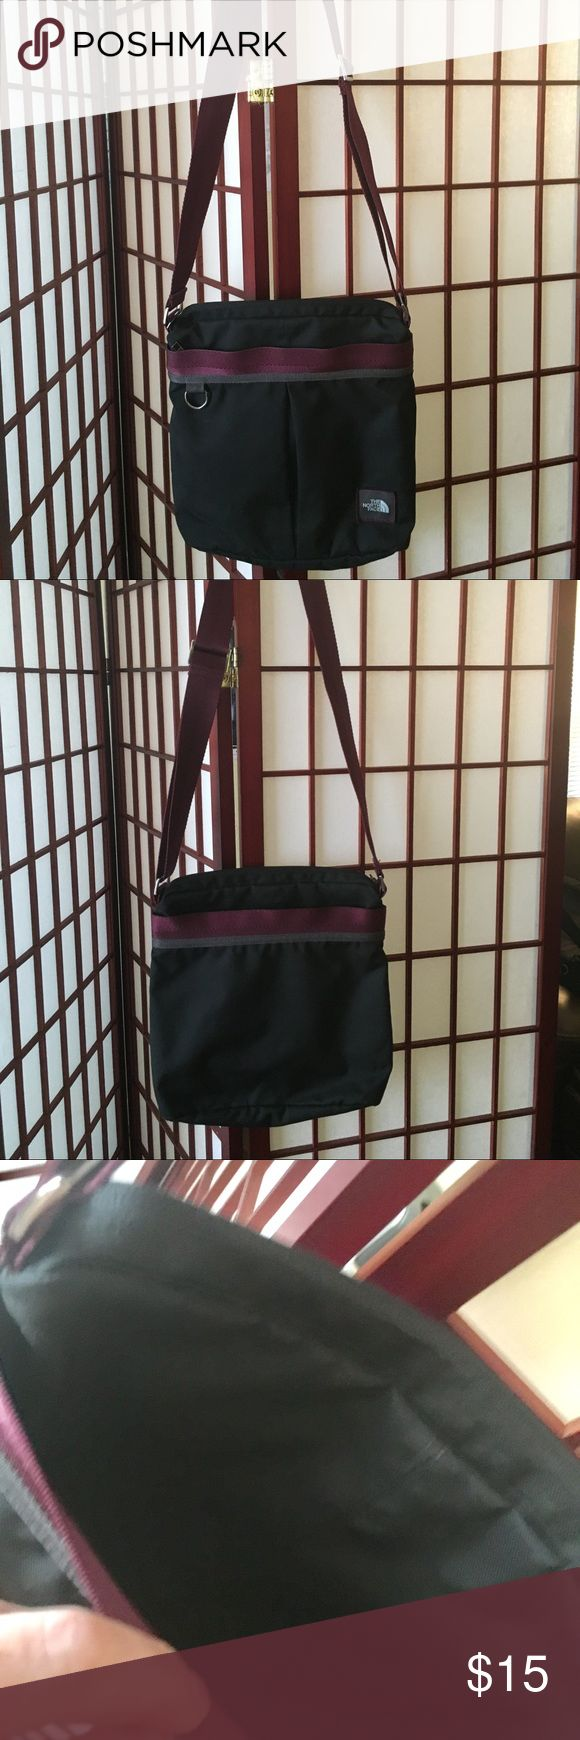 NorthFace cross body bag black/burgundy Gently used, in amazing condition, has a light white mark on the back. Maybe it will even wash out. North Face Bags Crossbody Bags